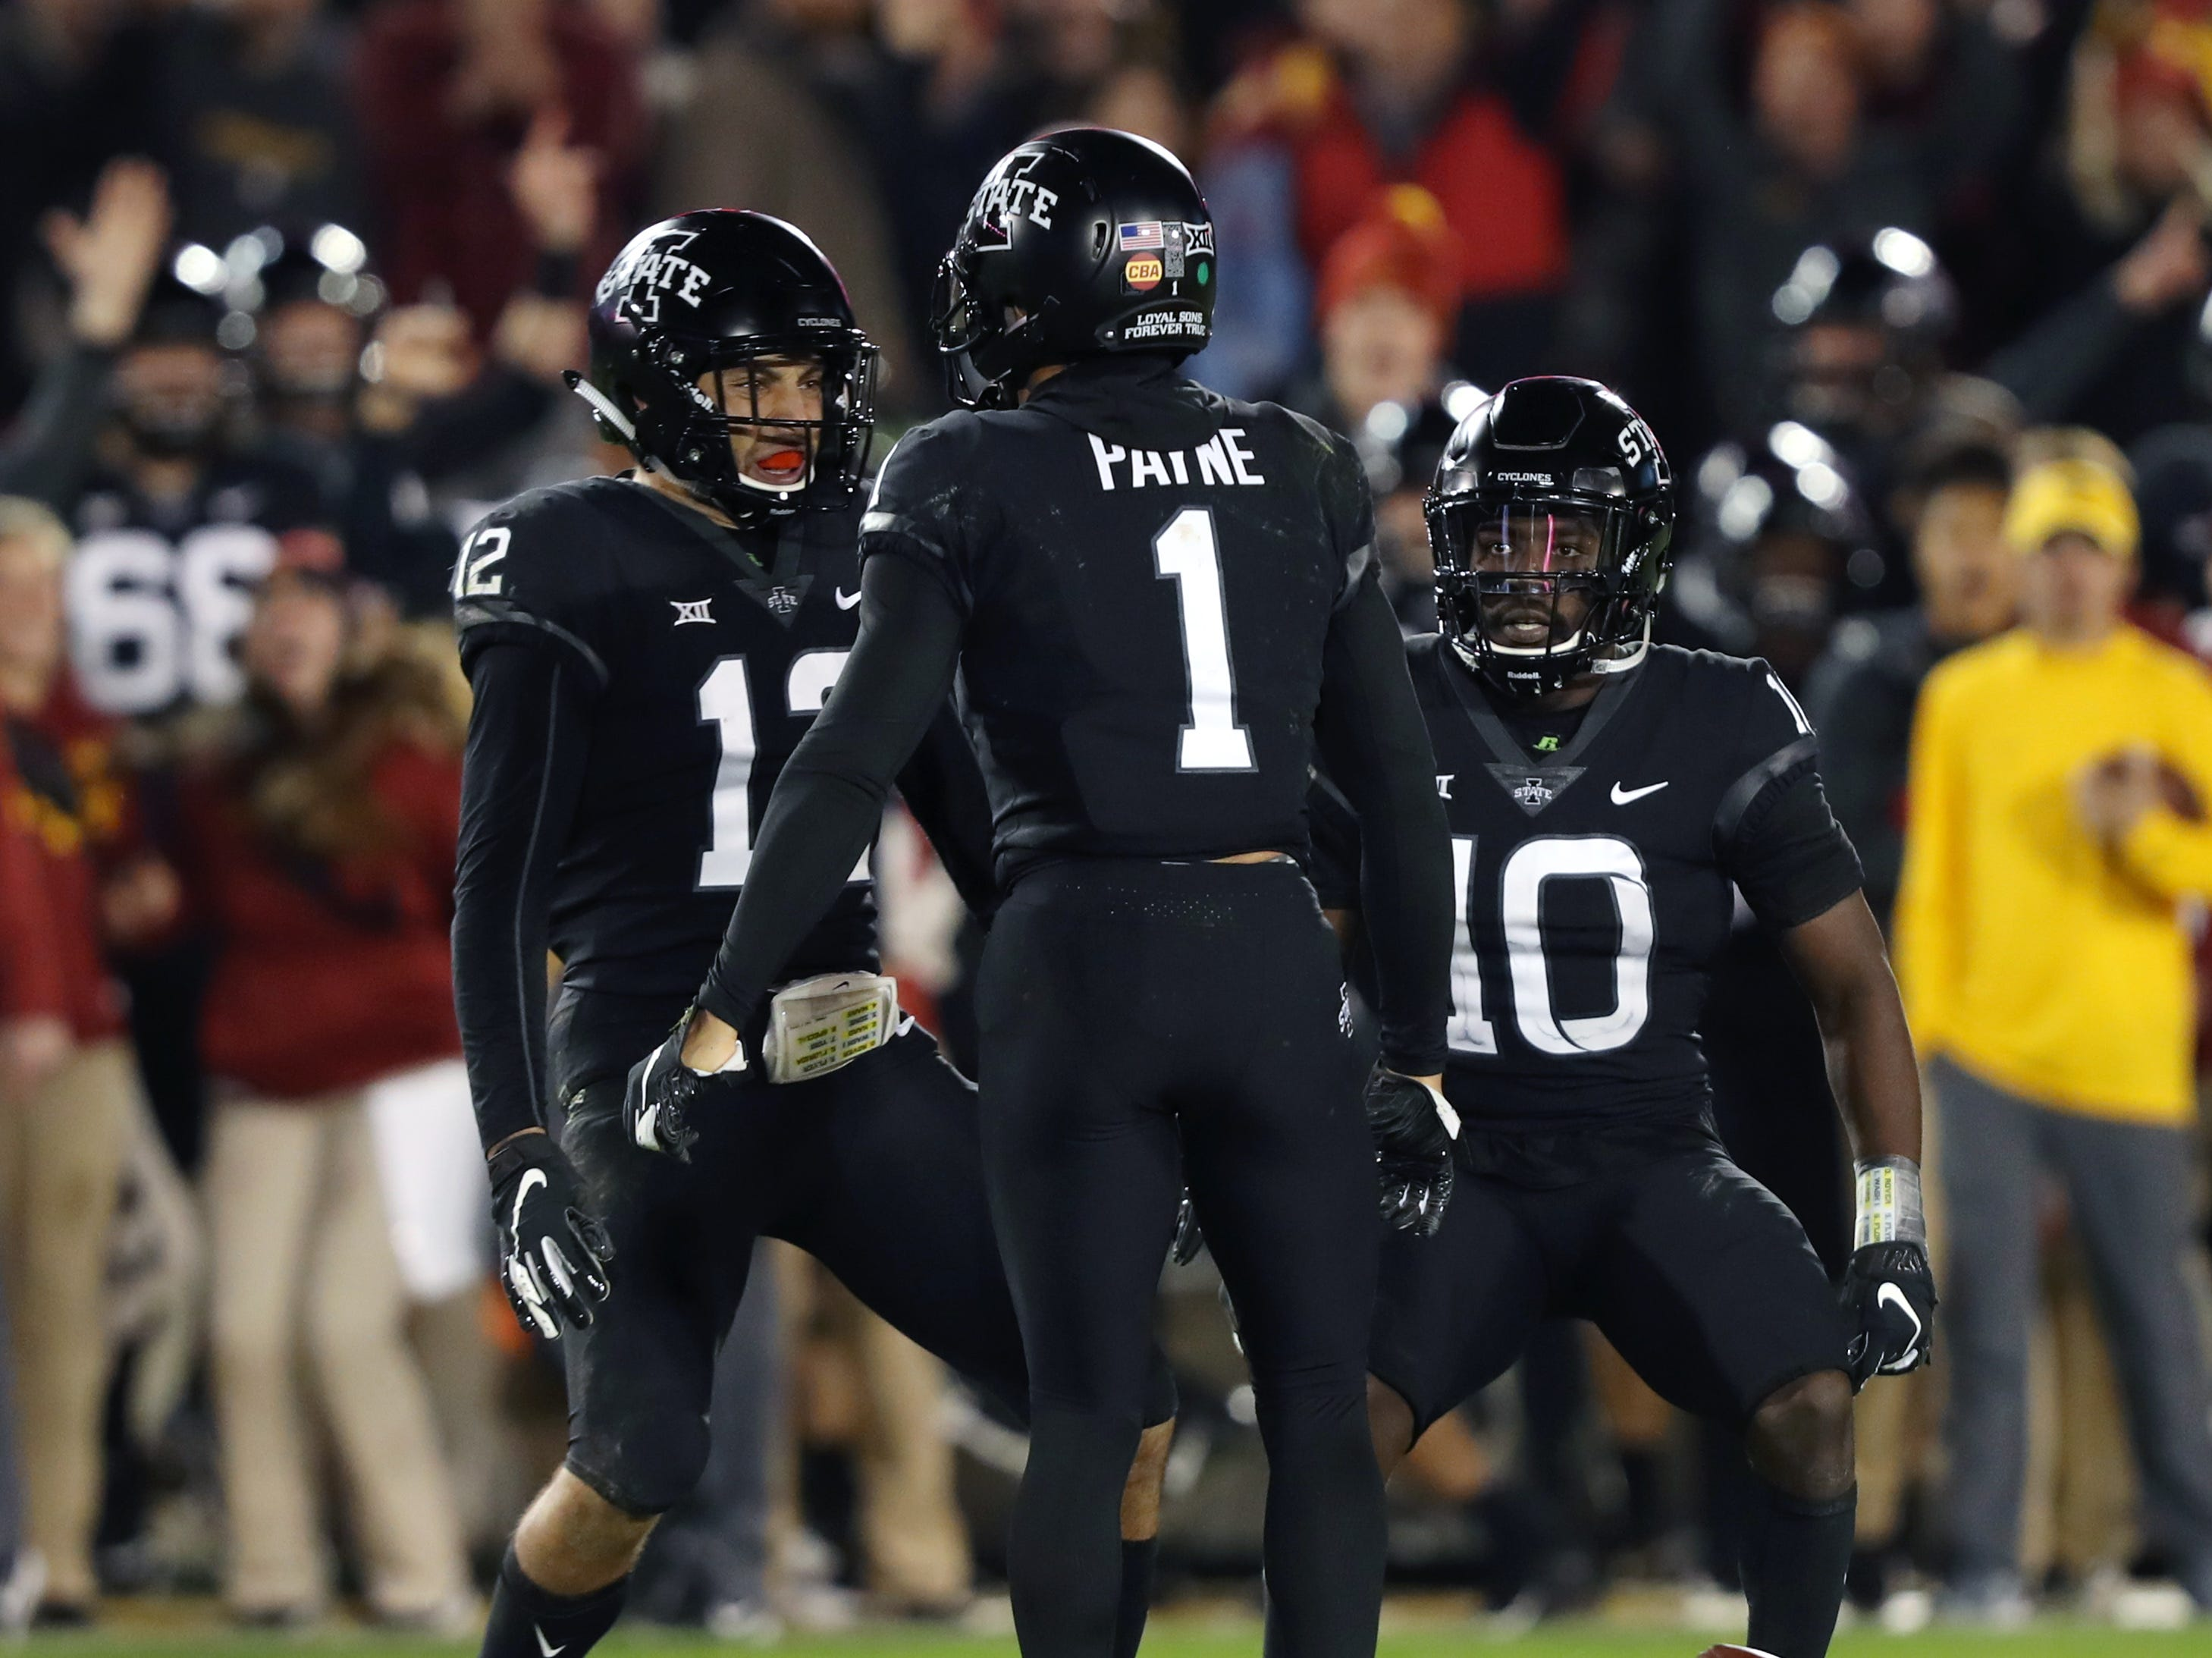 Iowa State Cyclones defensive back D'Andre Payne (1) celebrates with defensive back Greg Eisworth (12) and defensive back Brian Peavy (10) after intercepting a pass in the second half against the West Virginia Mountaineers at Jack Trice Stadium. Iowa State beat West Virginia 30-14.